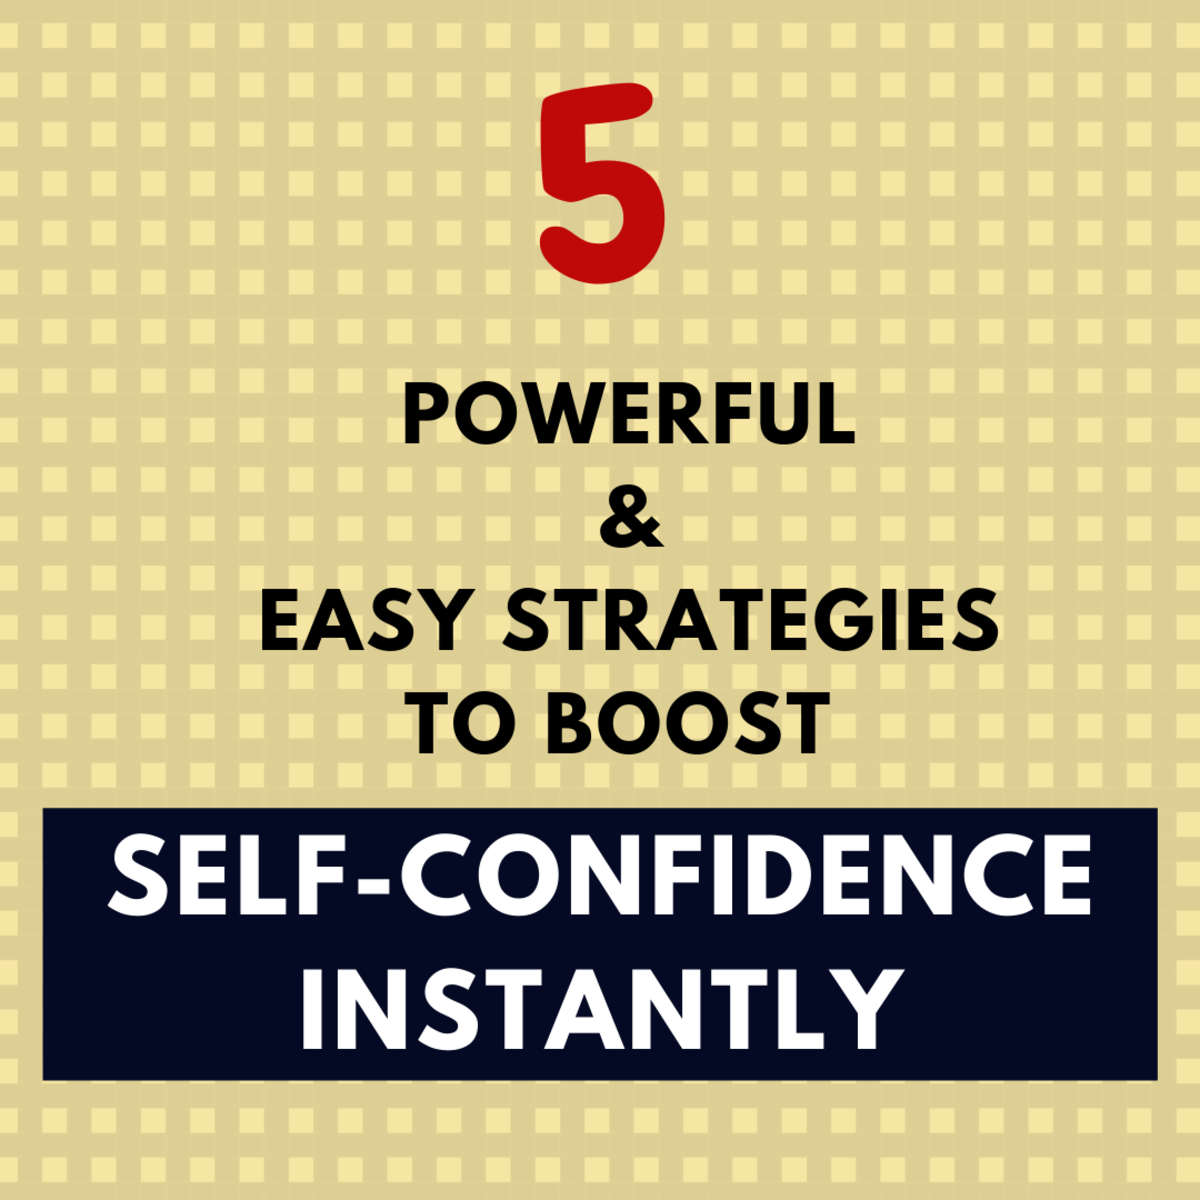 Powerful techniques to boost self-confidence instantly